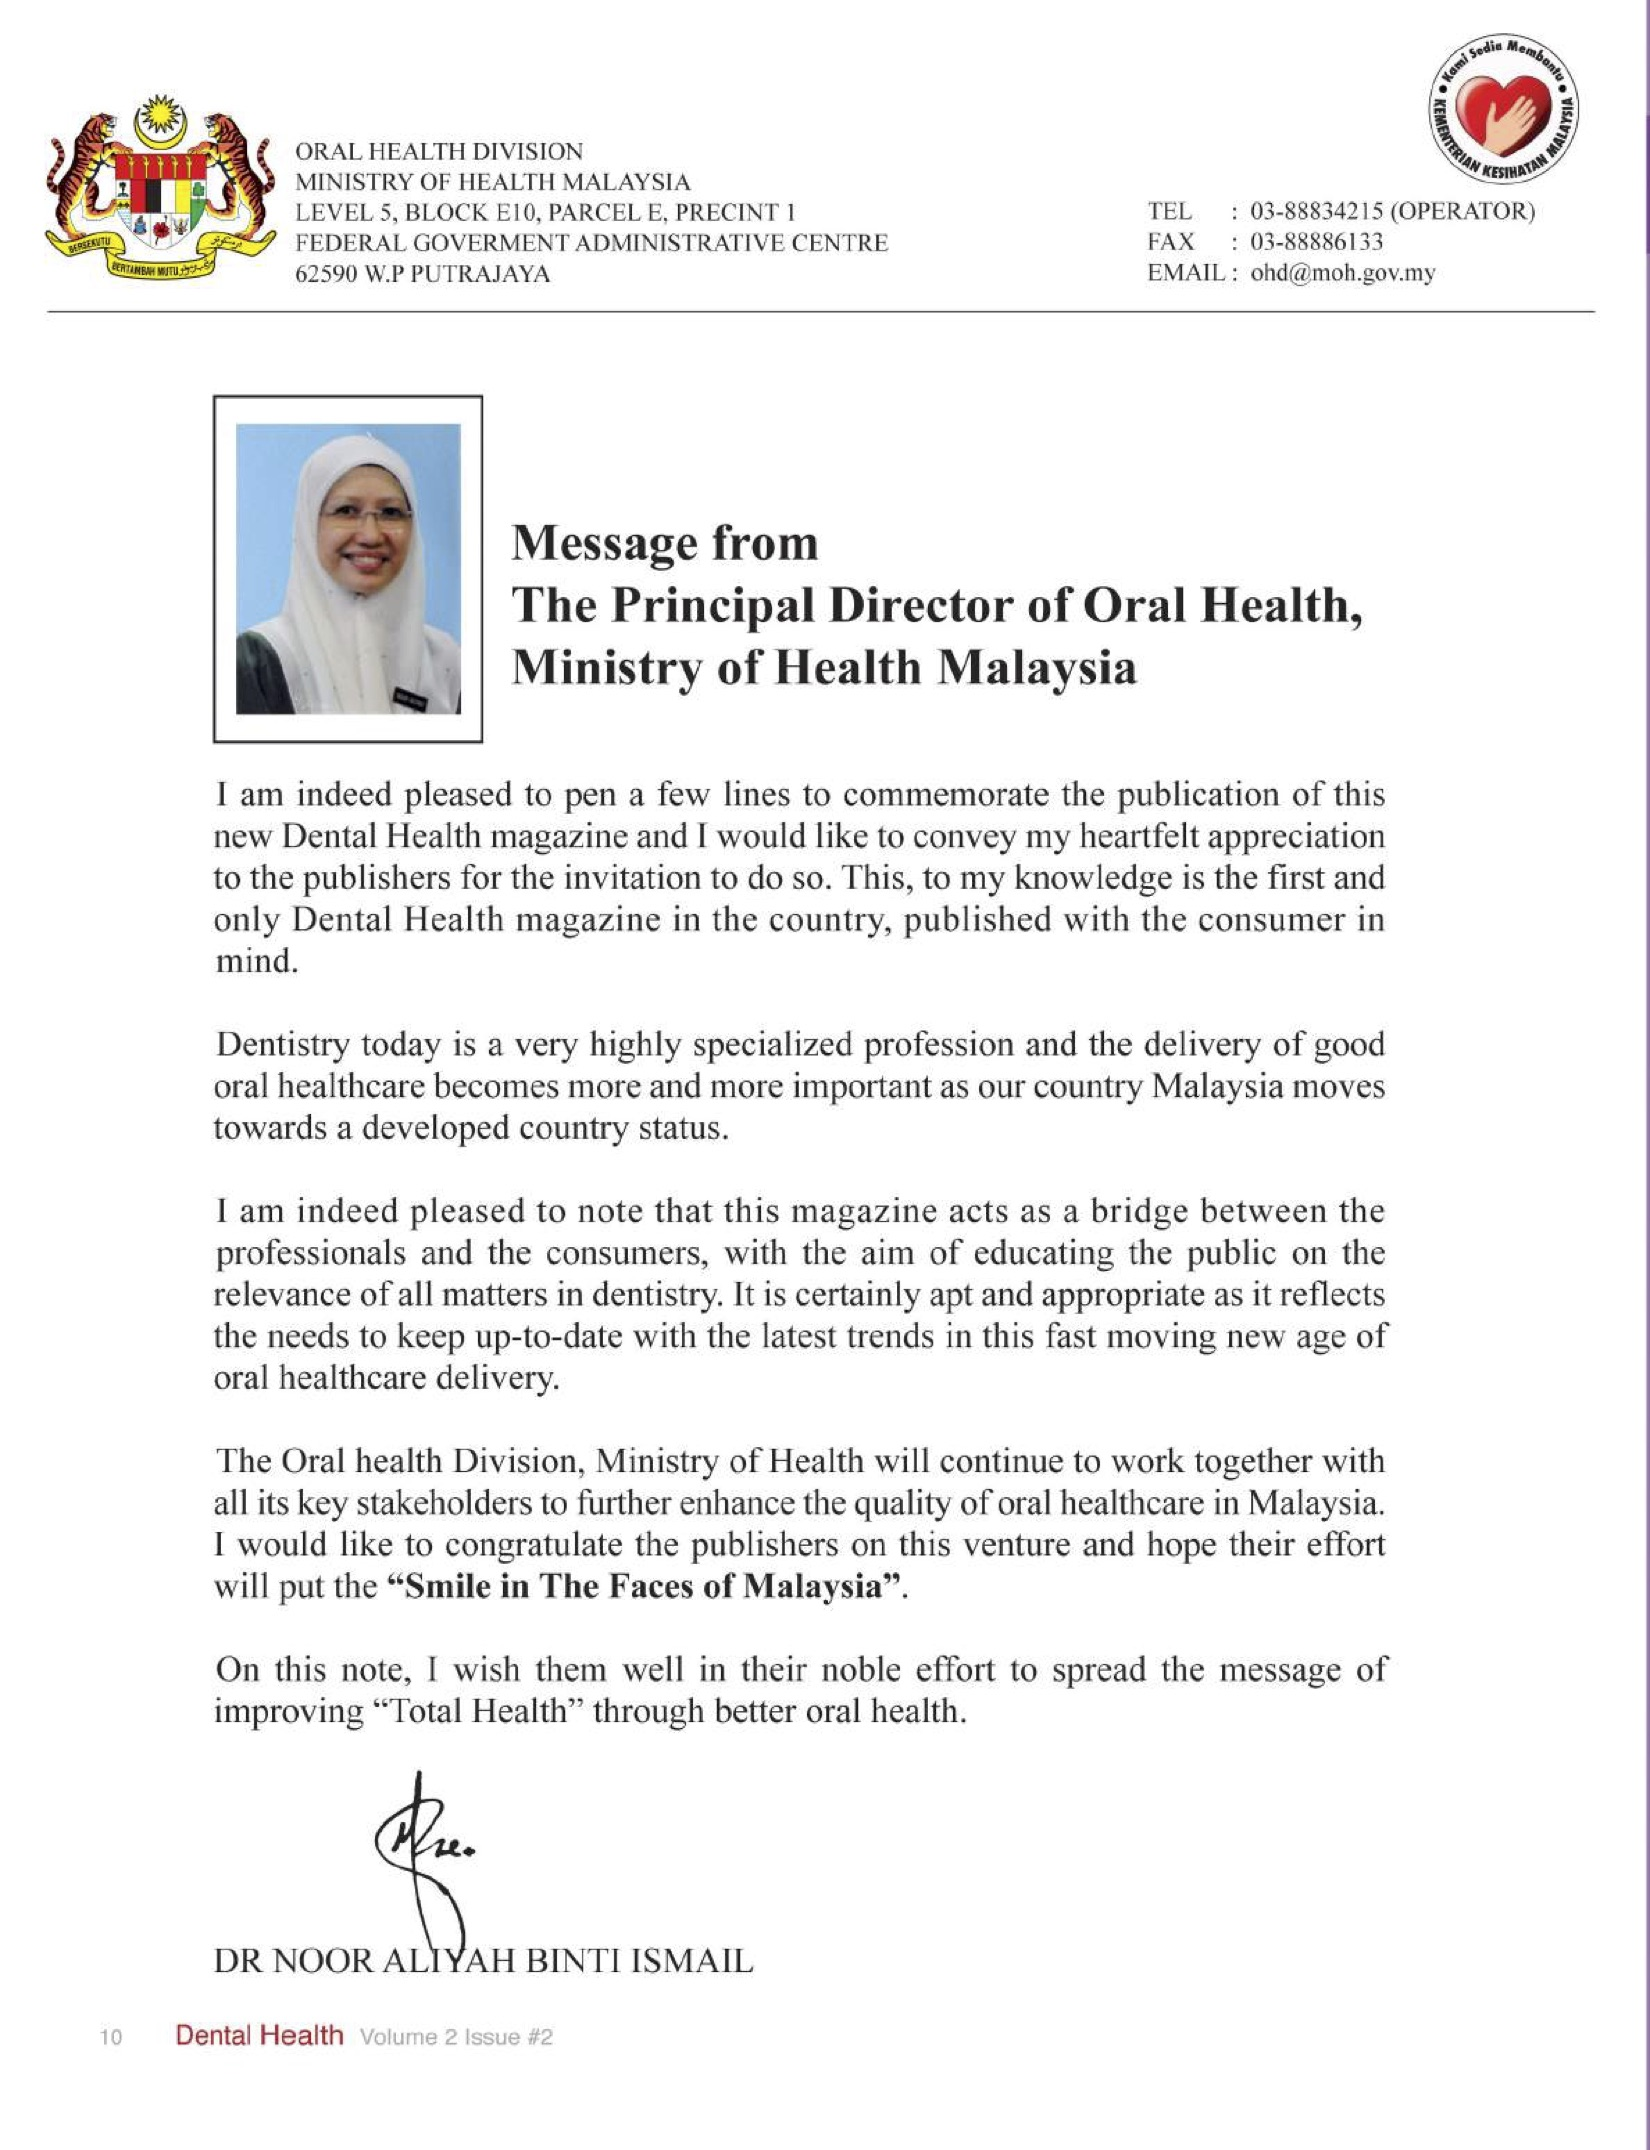 dental-health-magazine-volume-2-issue-2-malaysia-3